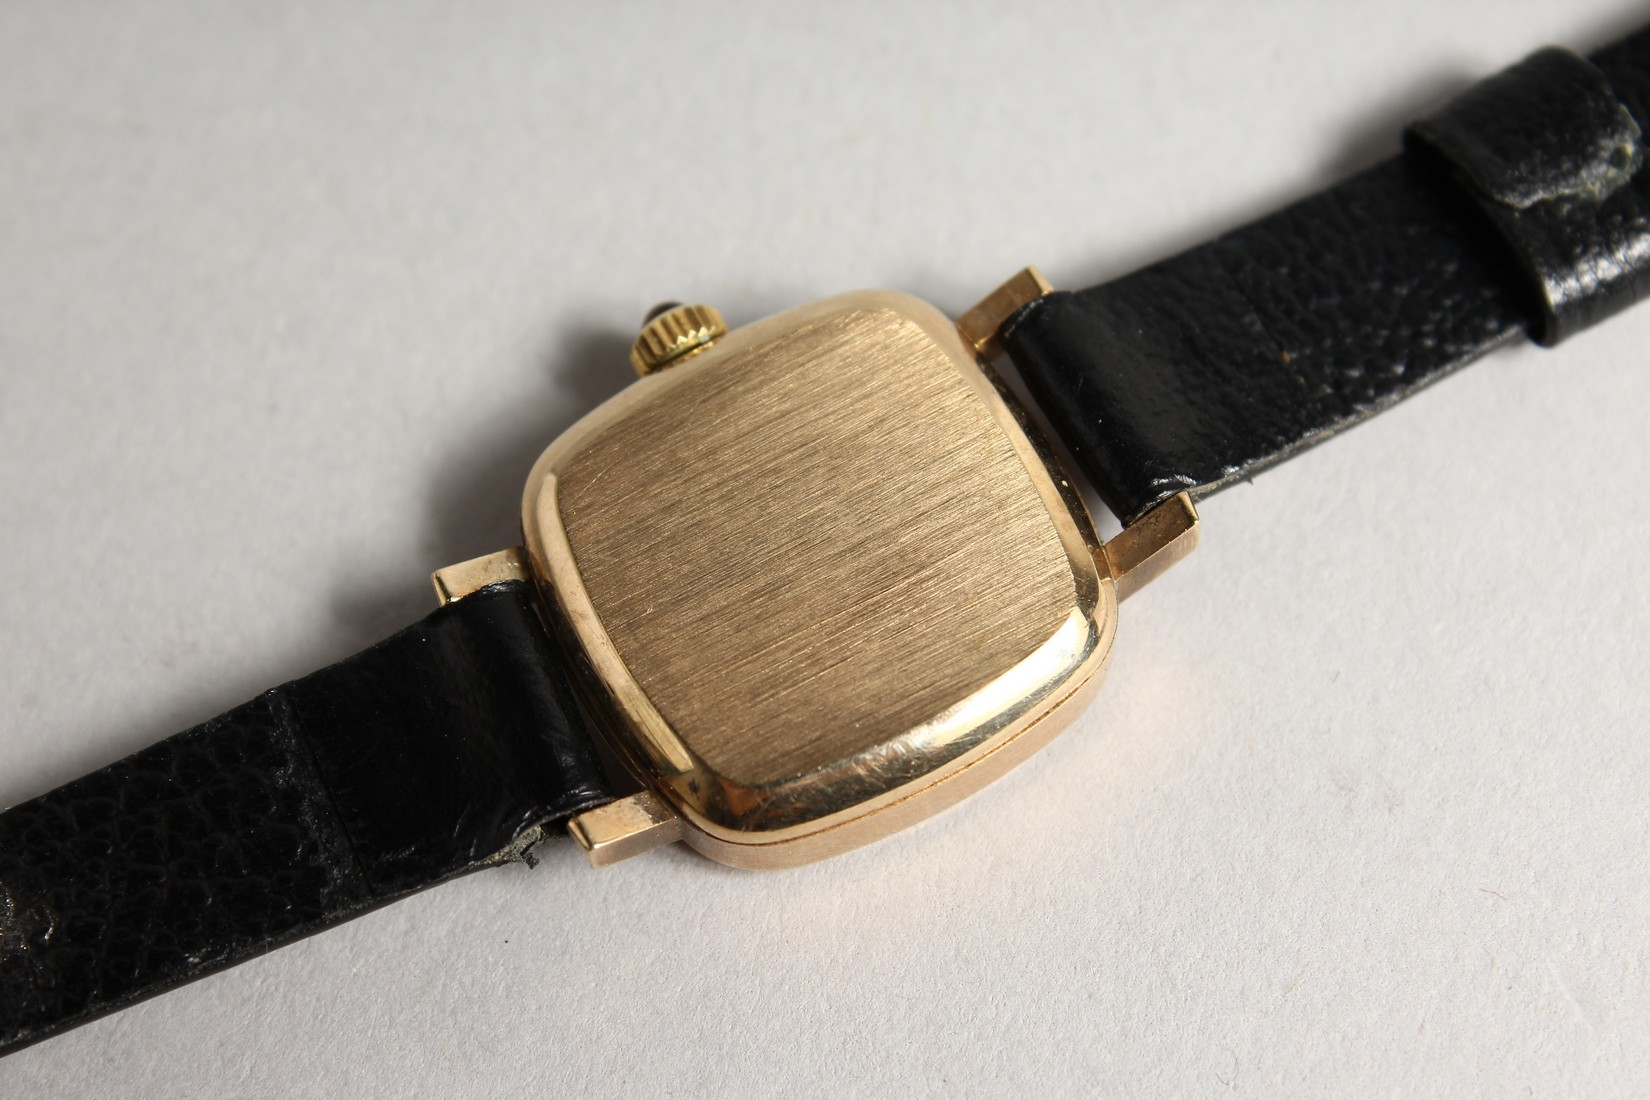 A LADIES VERY GOOD GOLD OMEGA WRIST WATCH with leather strap. - Image 4 of 4